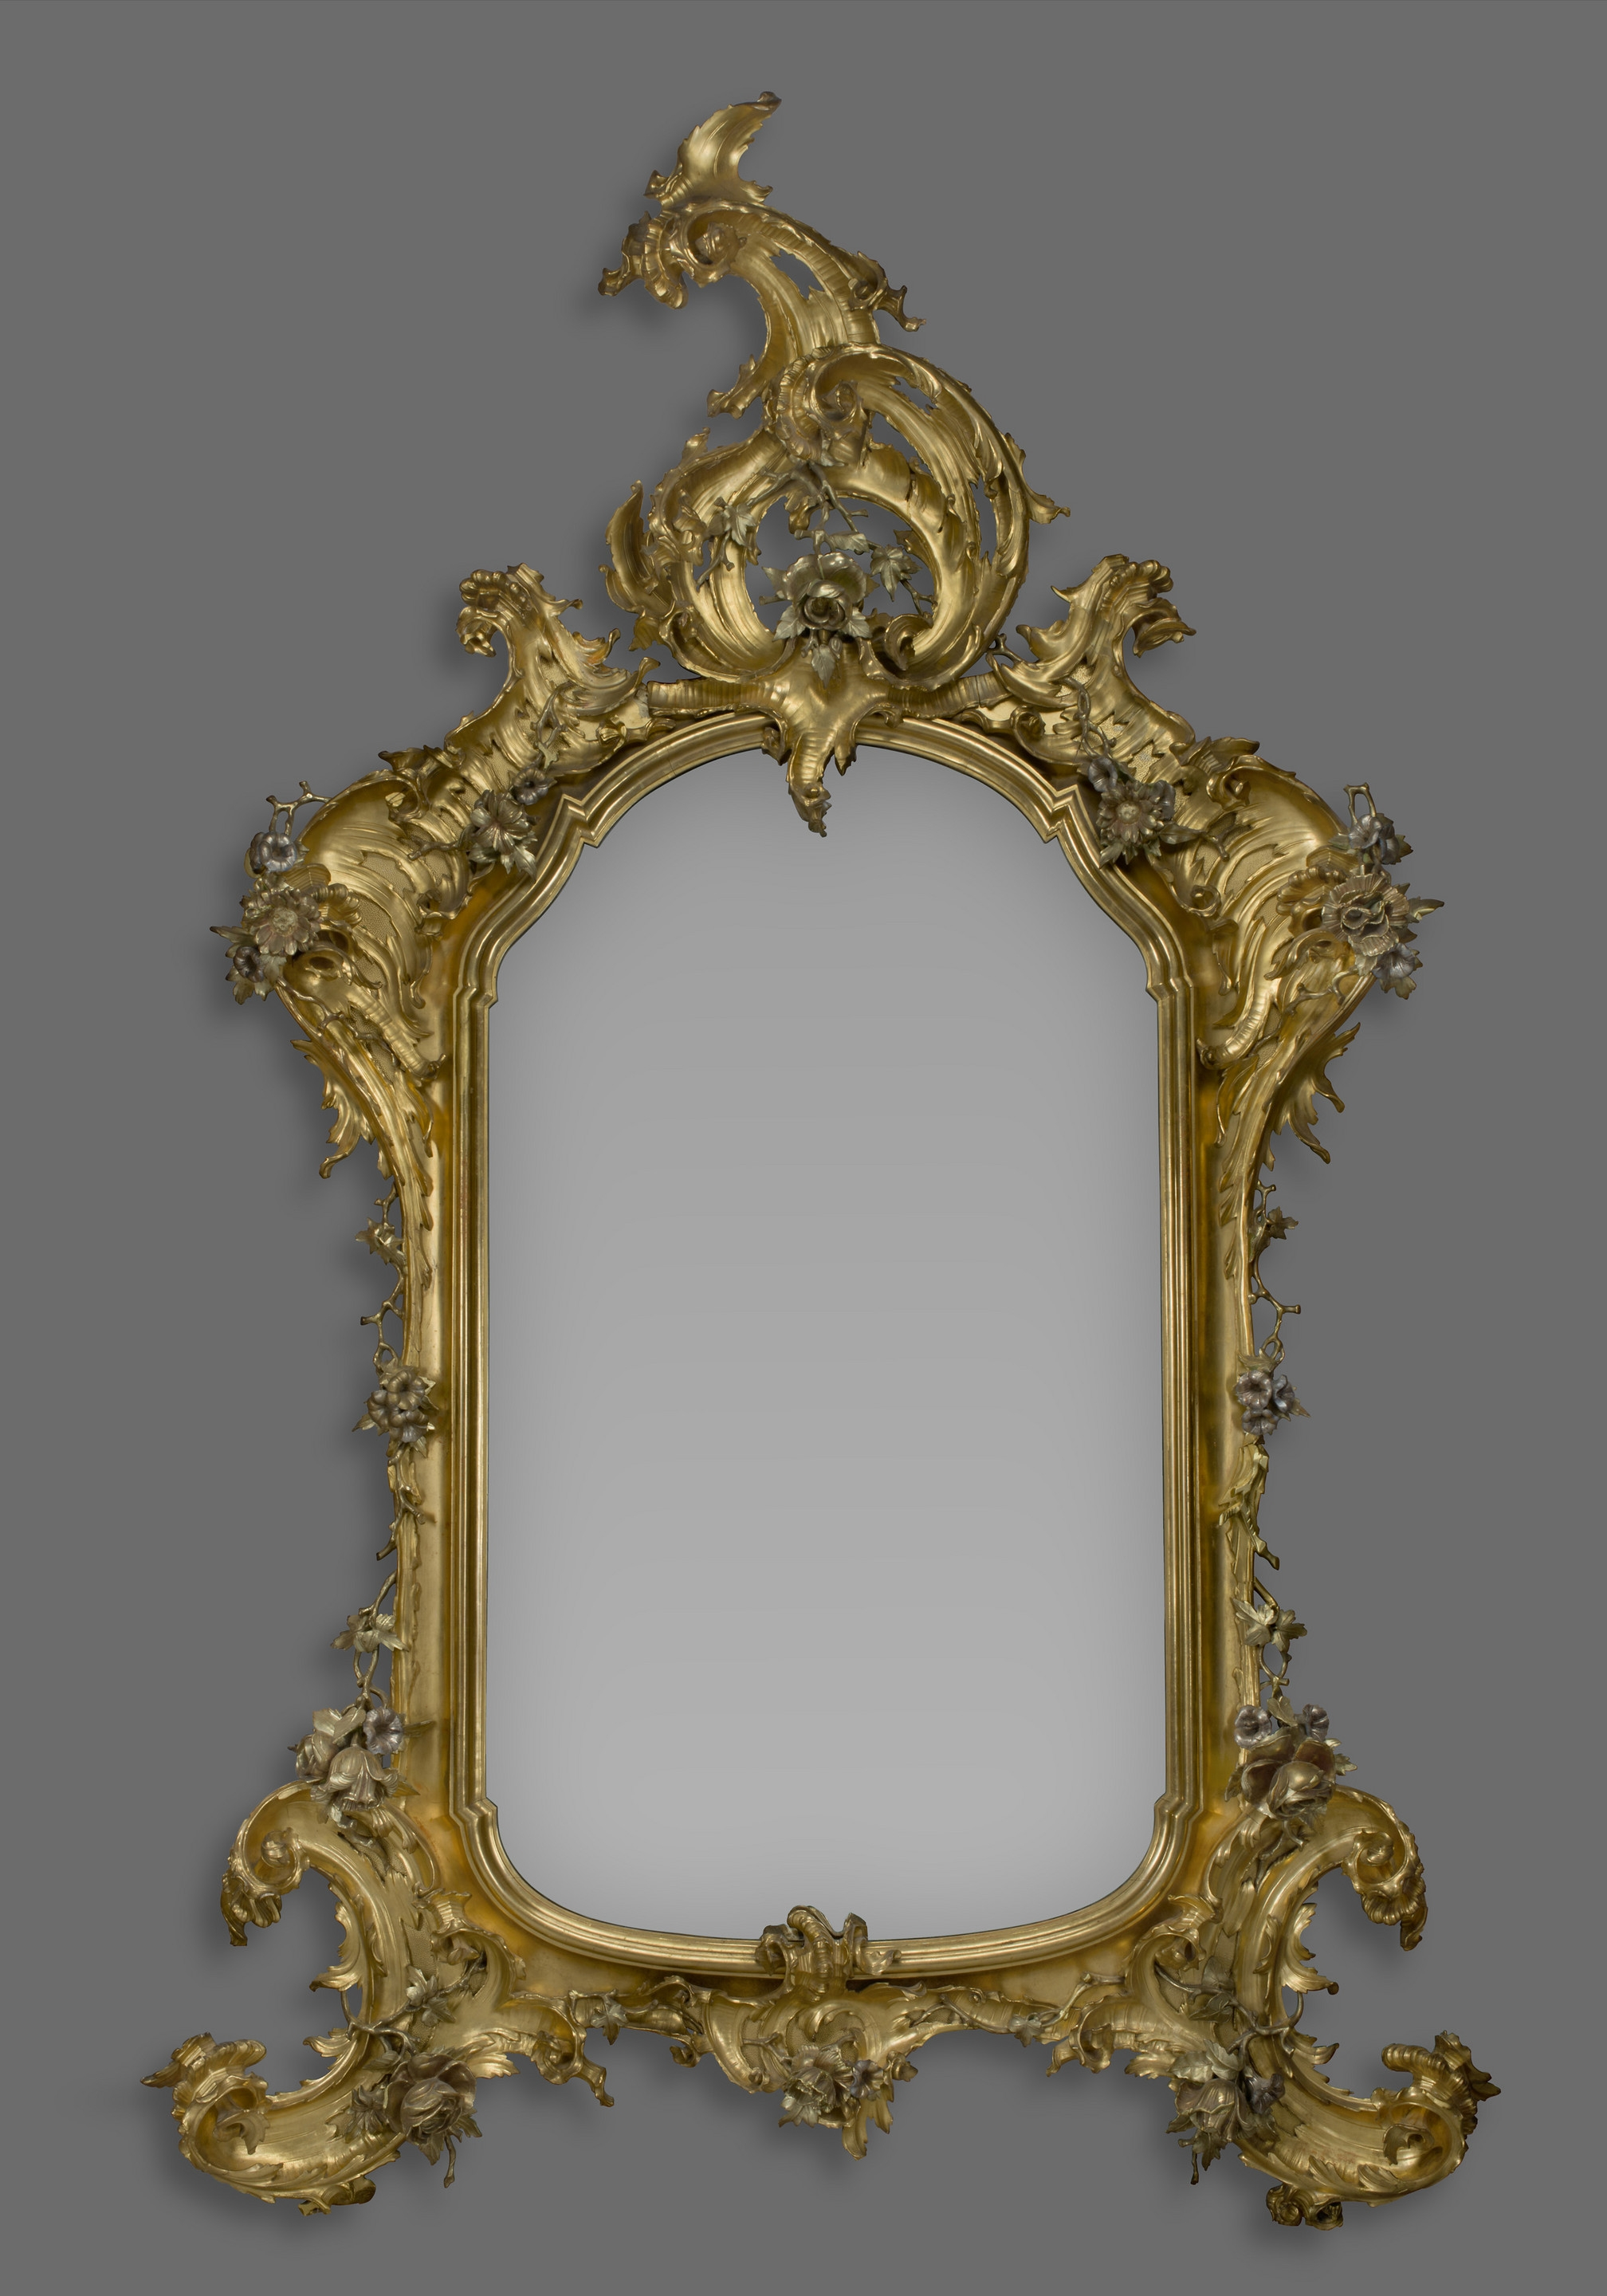 Antique Silver Mirrors The Uks Premier Antiques Portal Online Intended For Old Fashioned Mirrors For Sale (Image 5 of 15)